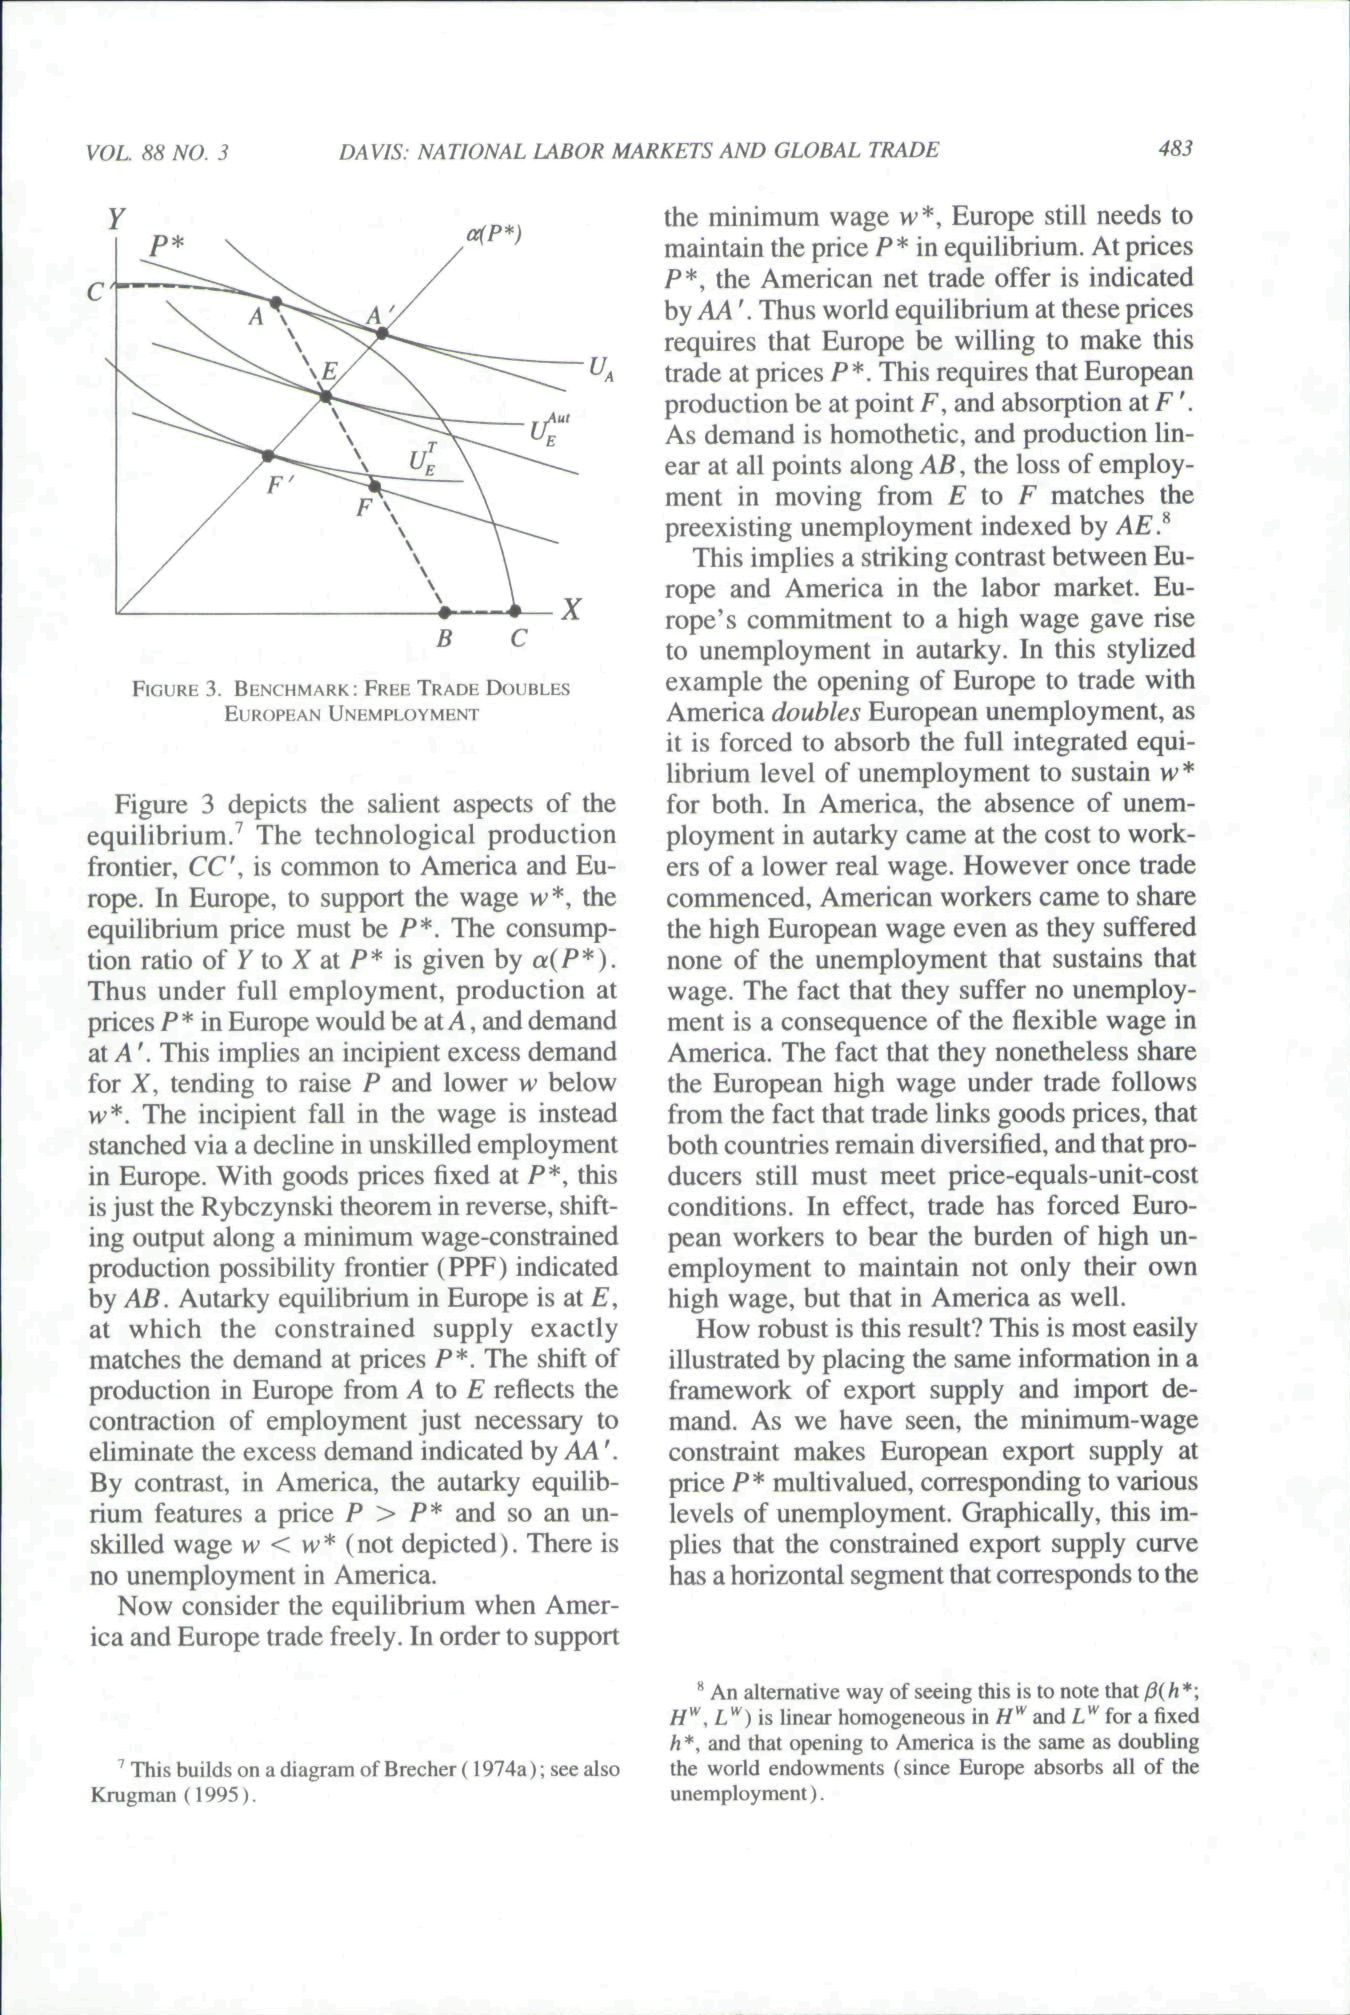 VOL 88 NO. 3 DAVIS: NATIONAL LABOR MARKETS AND GLOBAL TRADE 483 FIGURE 3.